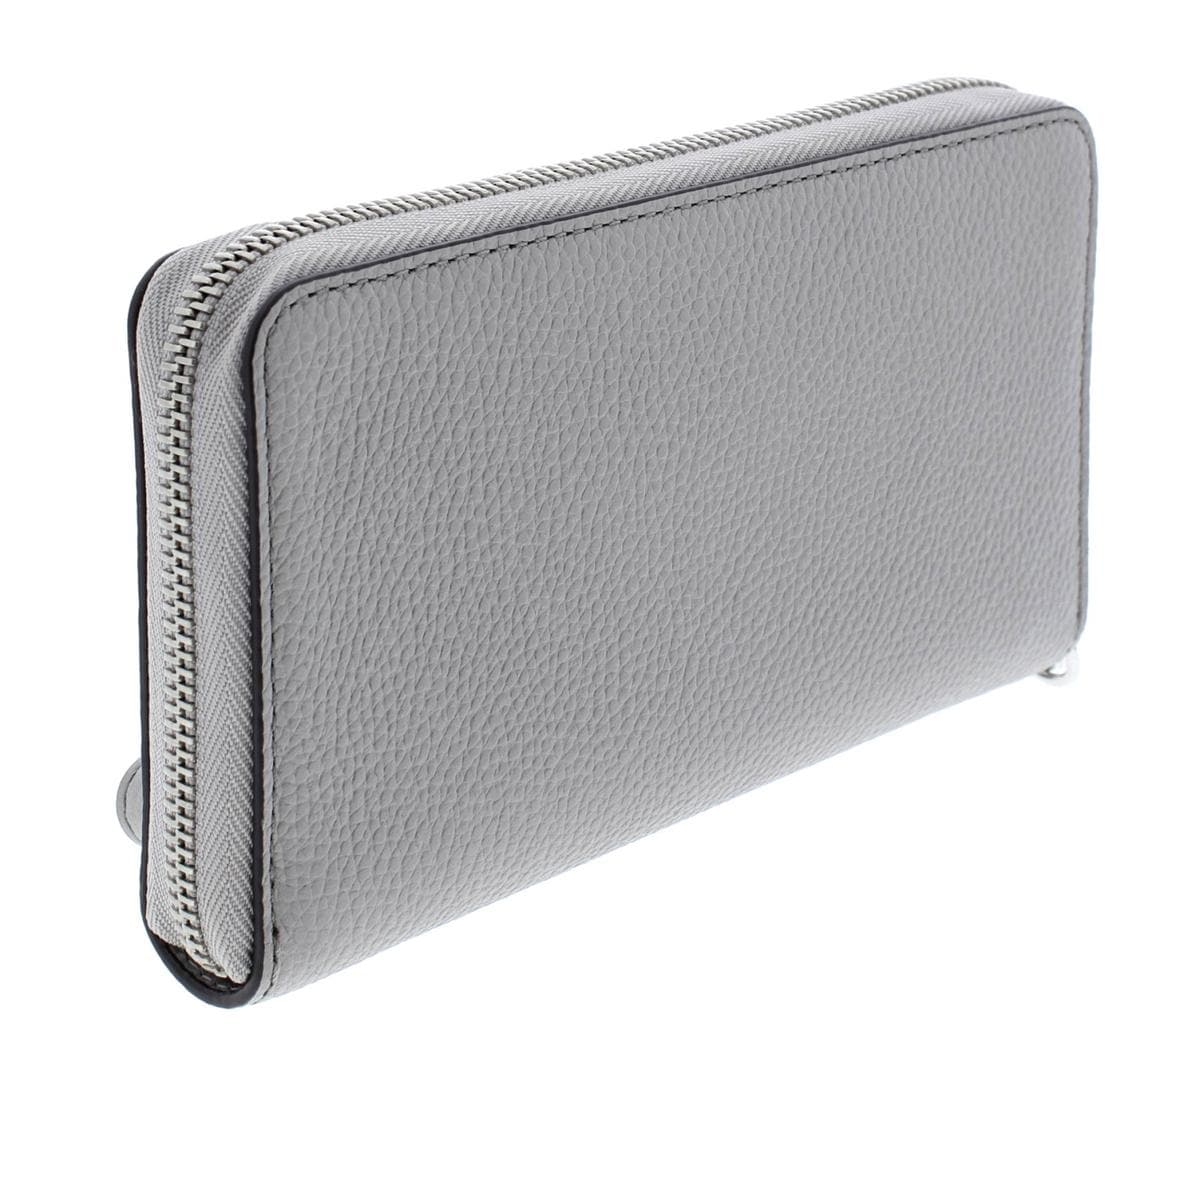 86912a1d9c59 Shop Michael Kors Womens Mercer Wristlet Wallet Leather Identity Protection  - o s - Free Shipping Today - Overstock - 25669778